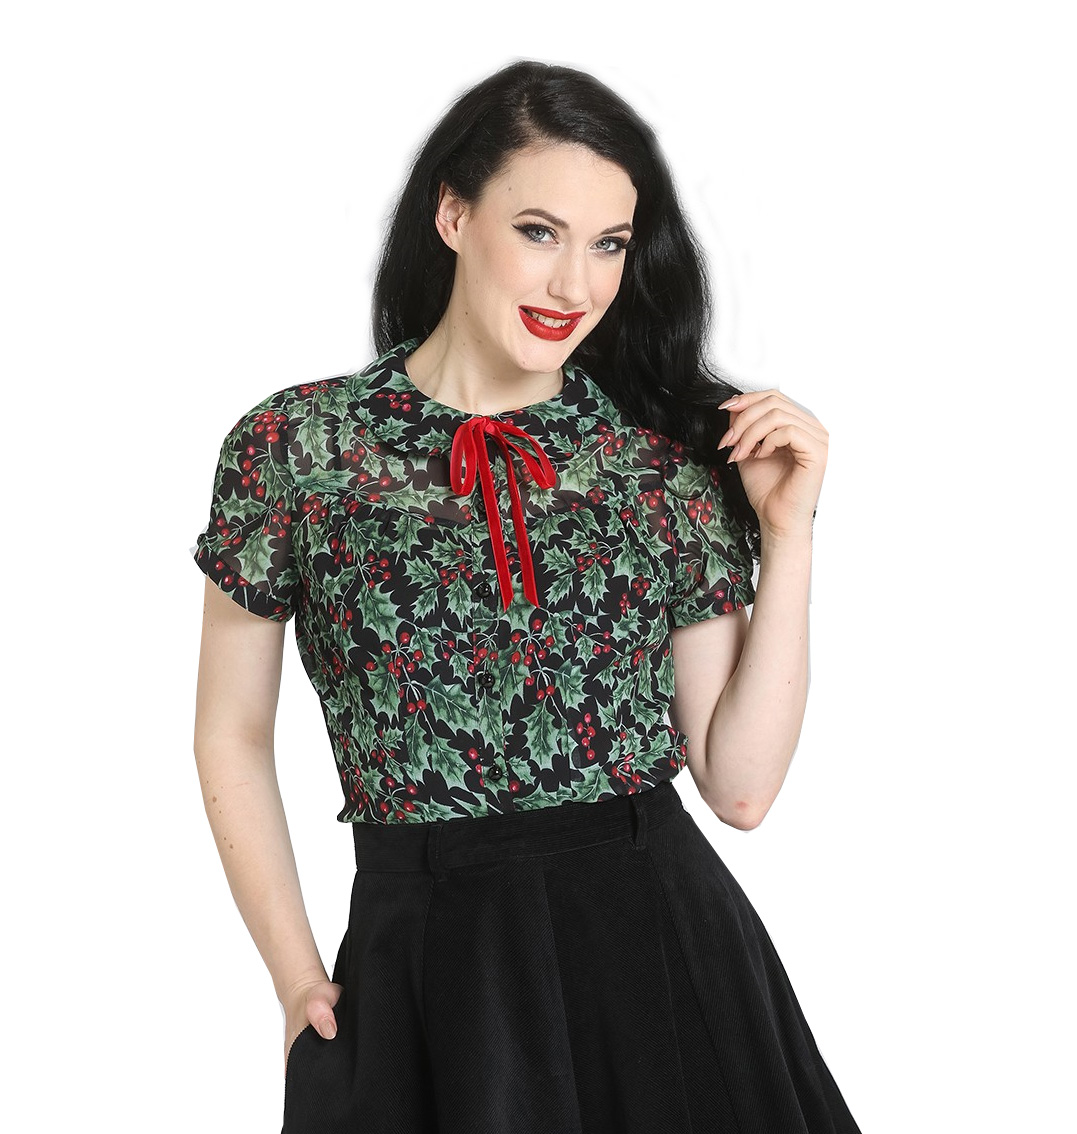 Hell-Bunny-50s-Shirt-Top-Christmas-Festive-HOLLY-Berry-Blouse-Black-All-Sizes thumbnail 11